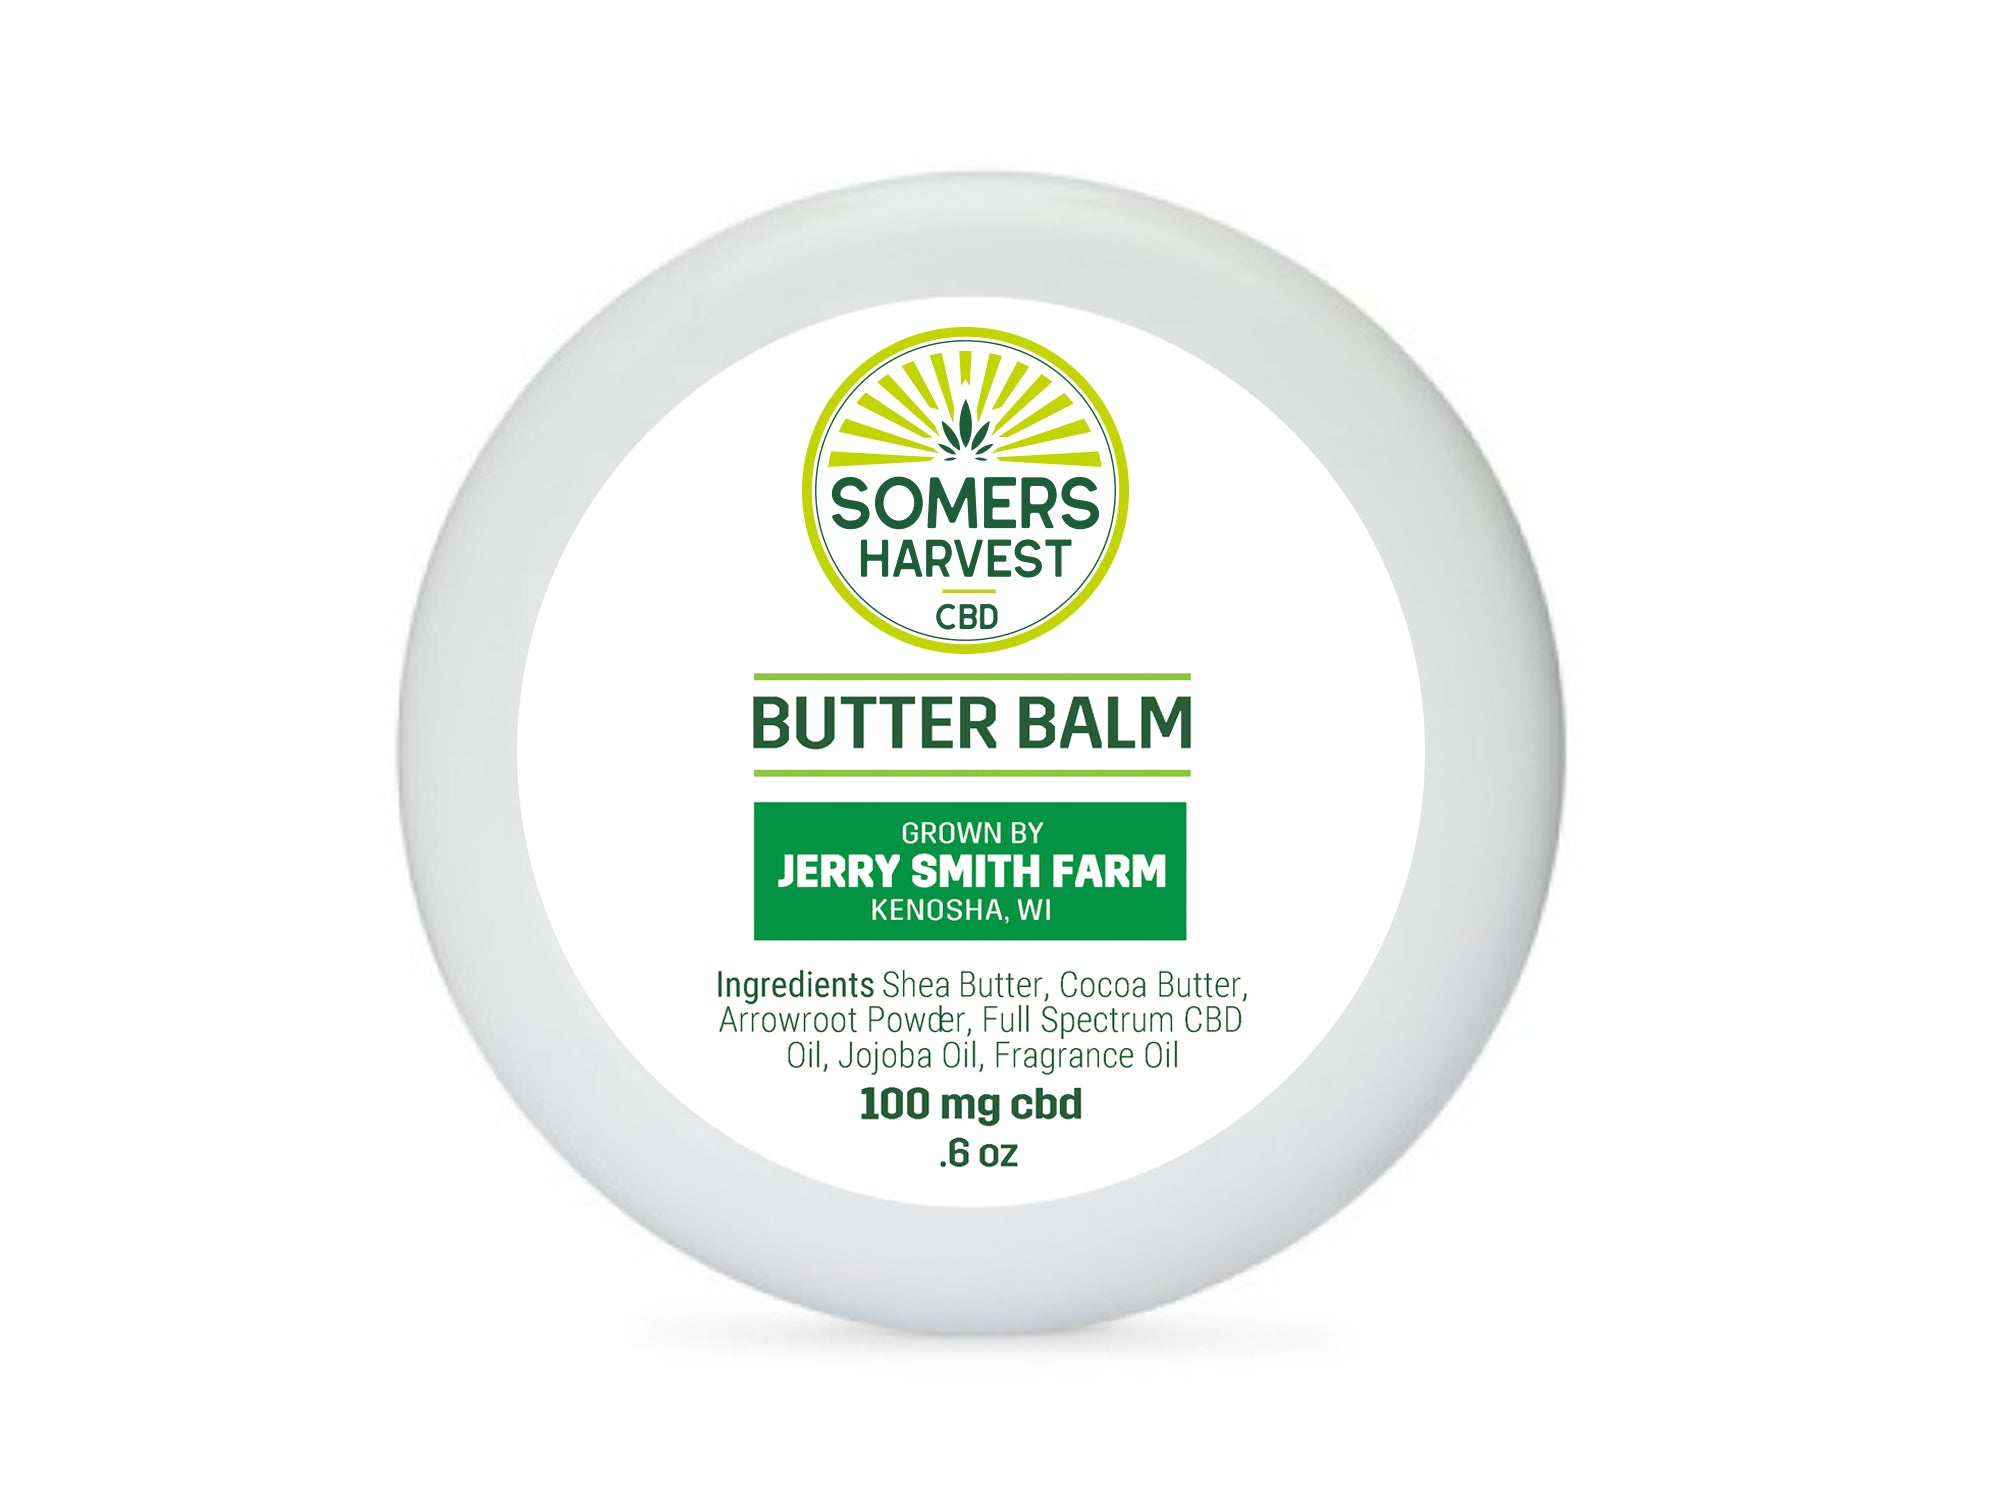 Somers Harvest CBD Butter Balm